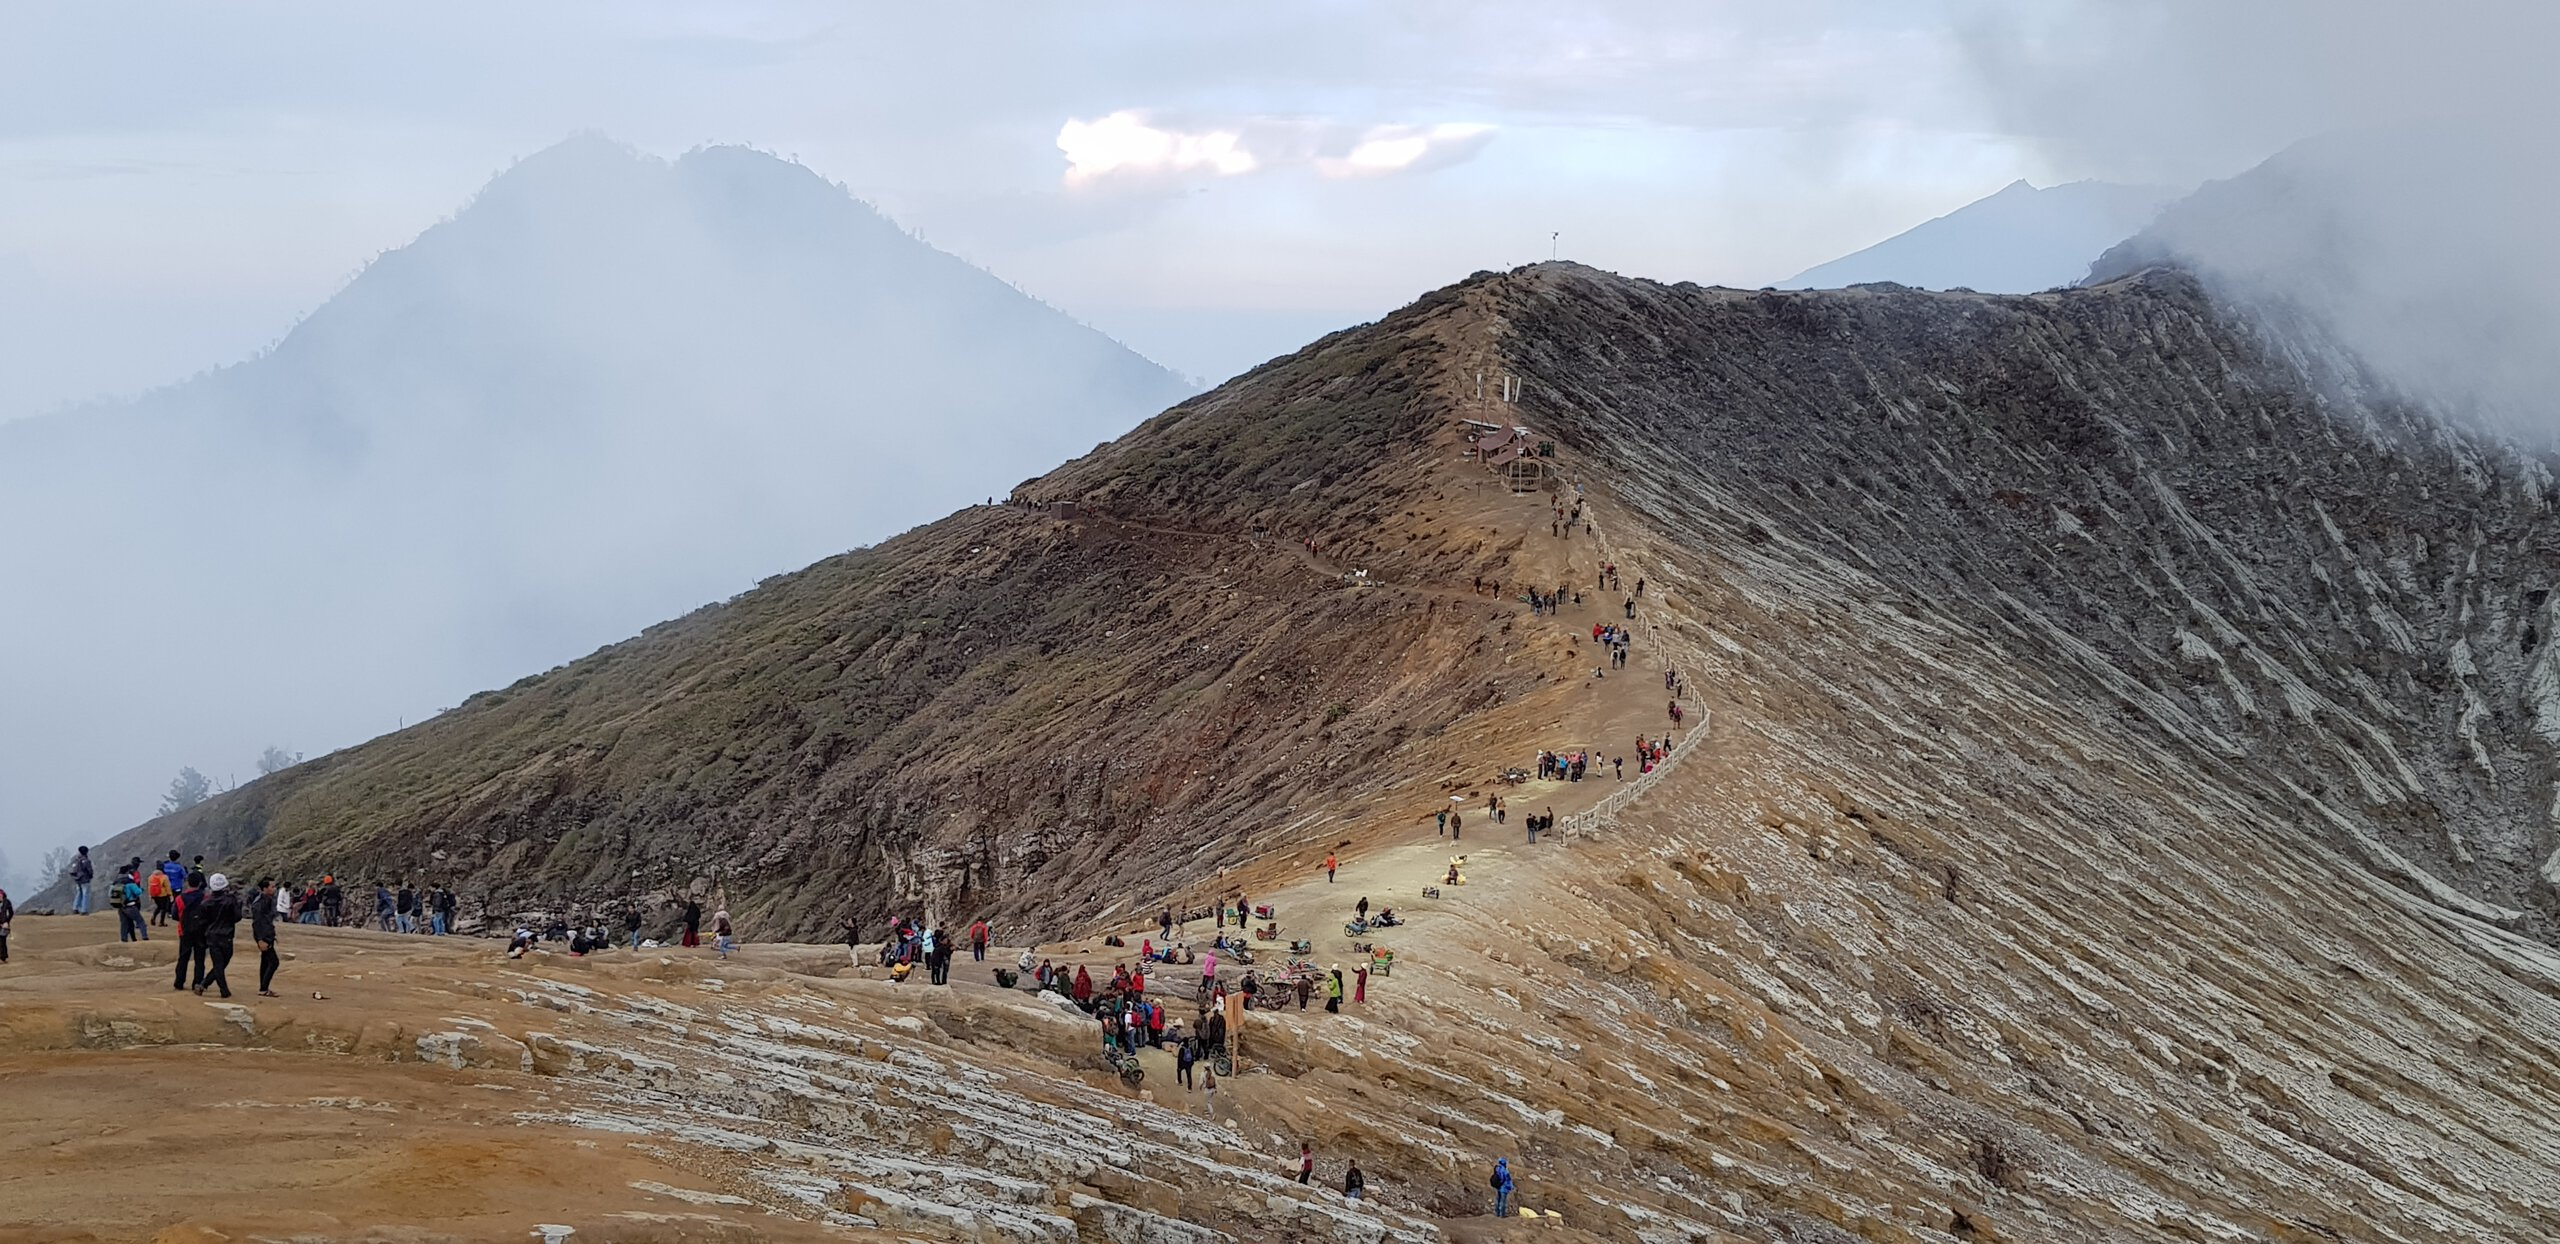 Tourists idling at the crater rim of Ijen volcano, making last selfies before going back to the base camp.